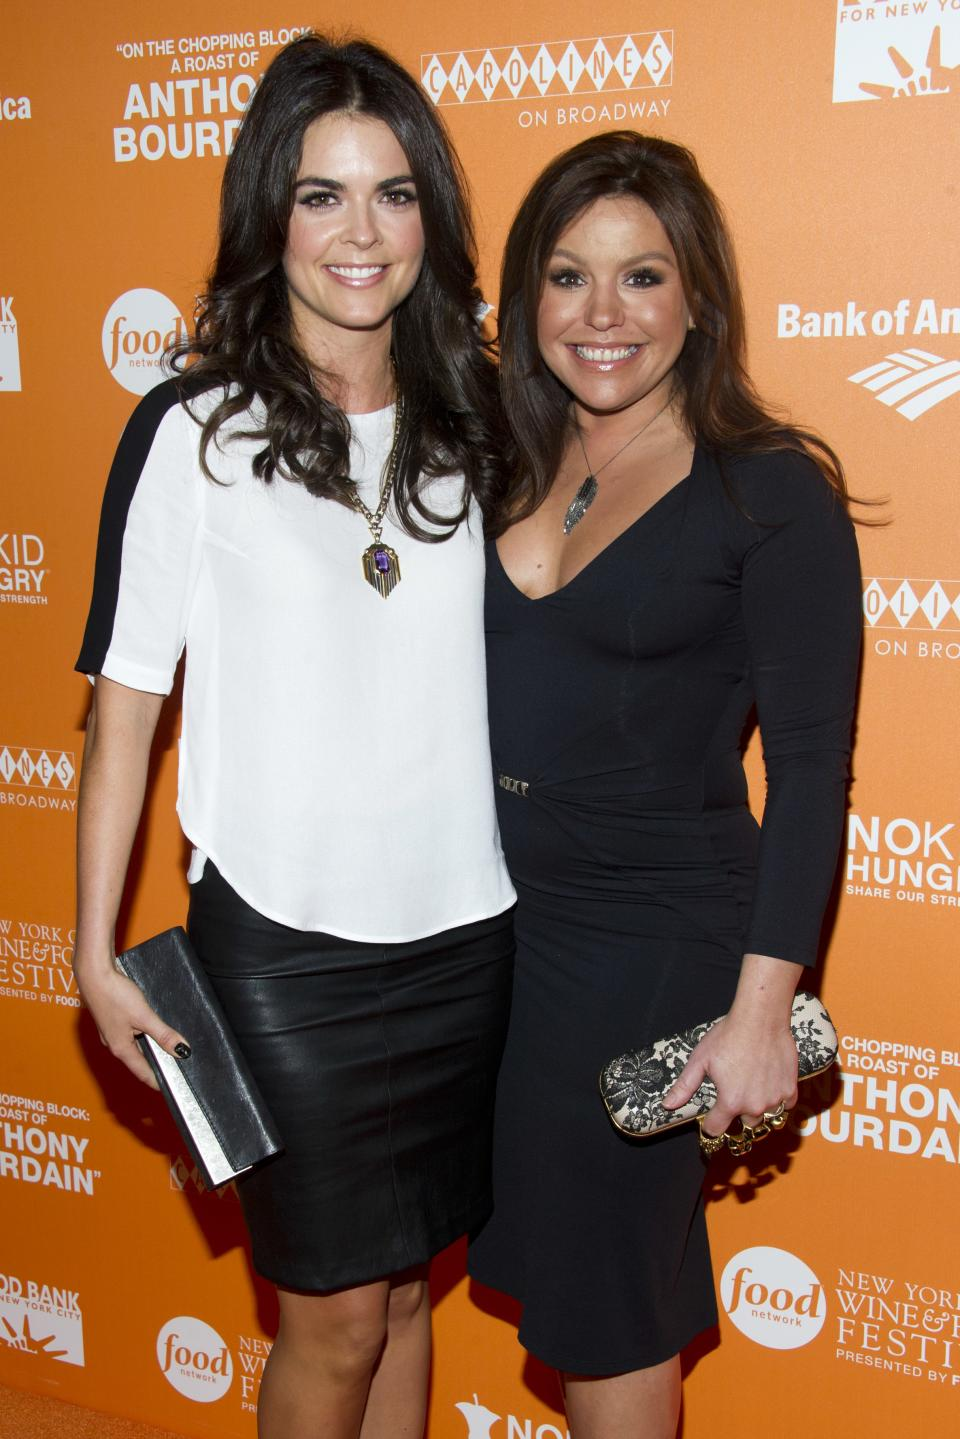 "Katie Lee Joel, left, and Rachael Ray attend ""On The Chopping Block: A Roast of Anthony Bourdain"" on Thursday, Oct. 11, 2012 in New York. (Photo by Charles Sykes/Invision/AP Images)"